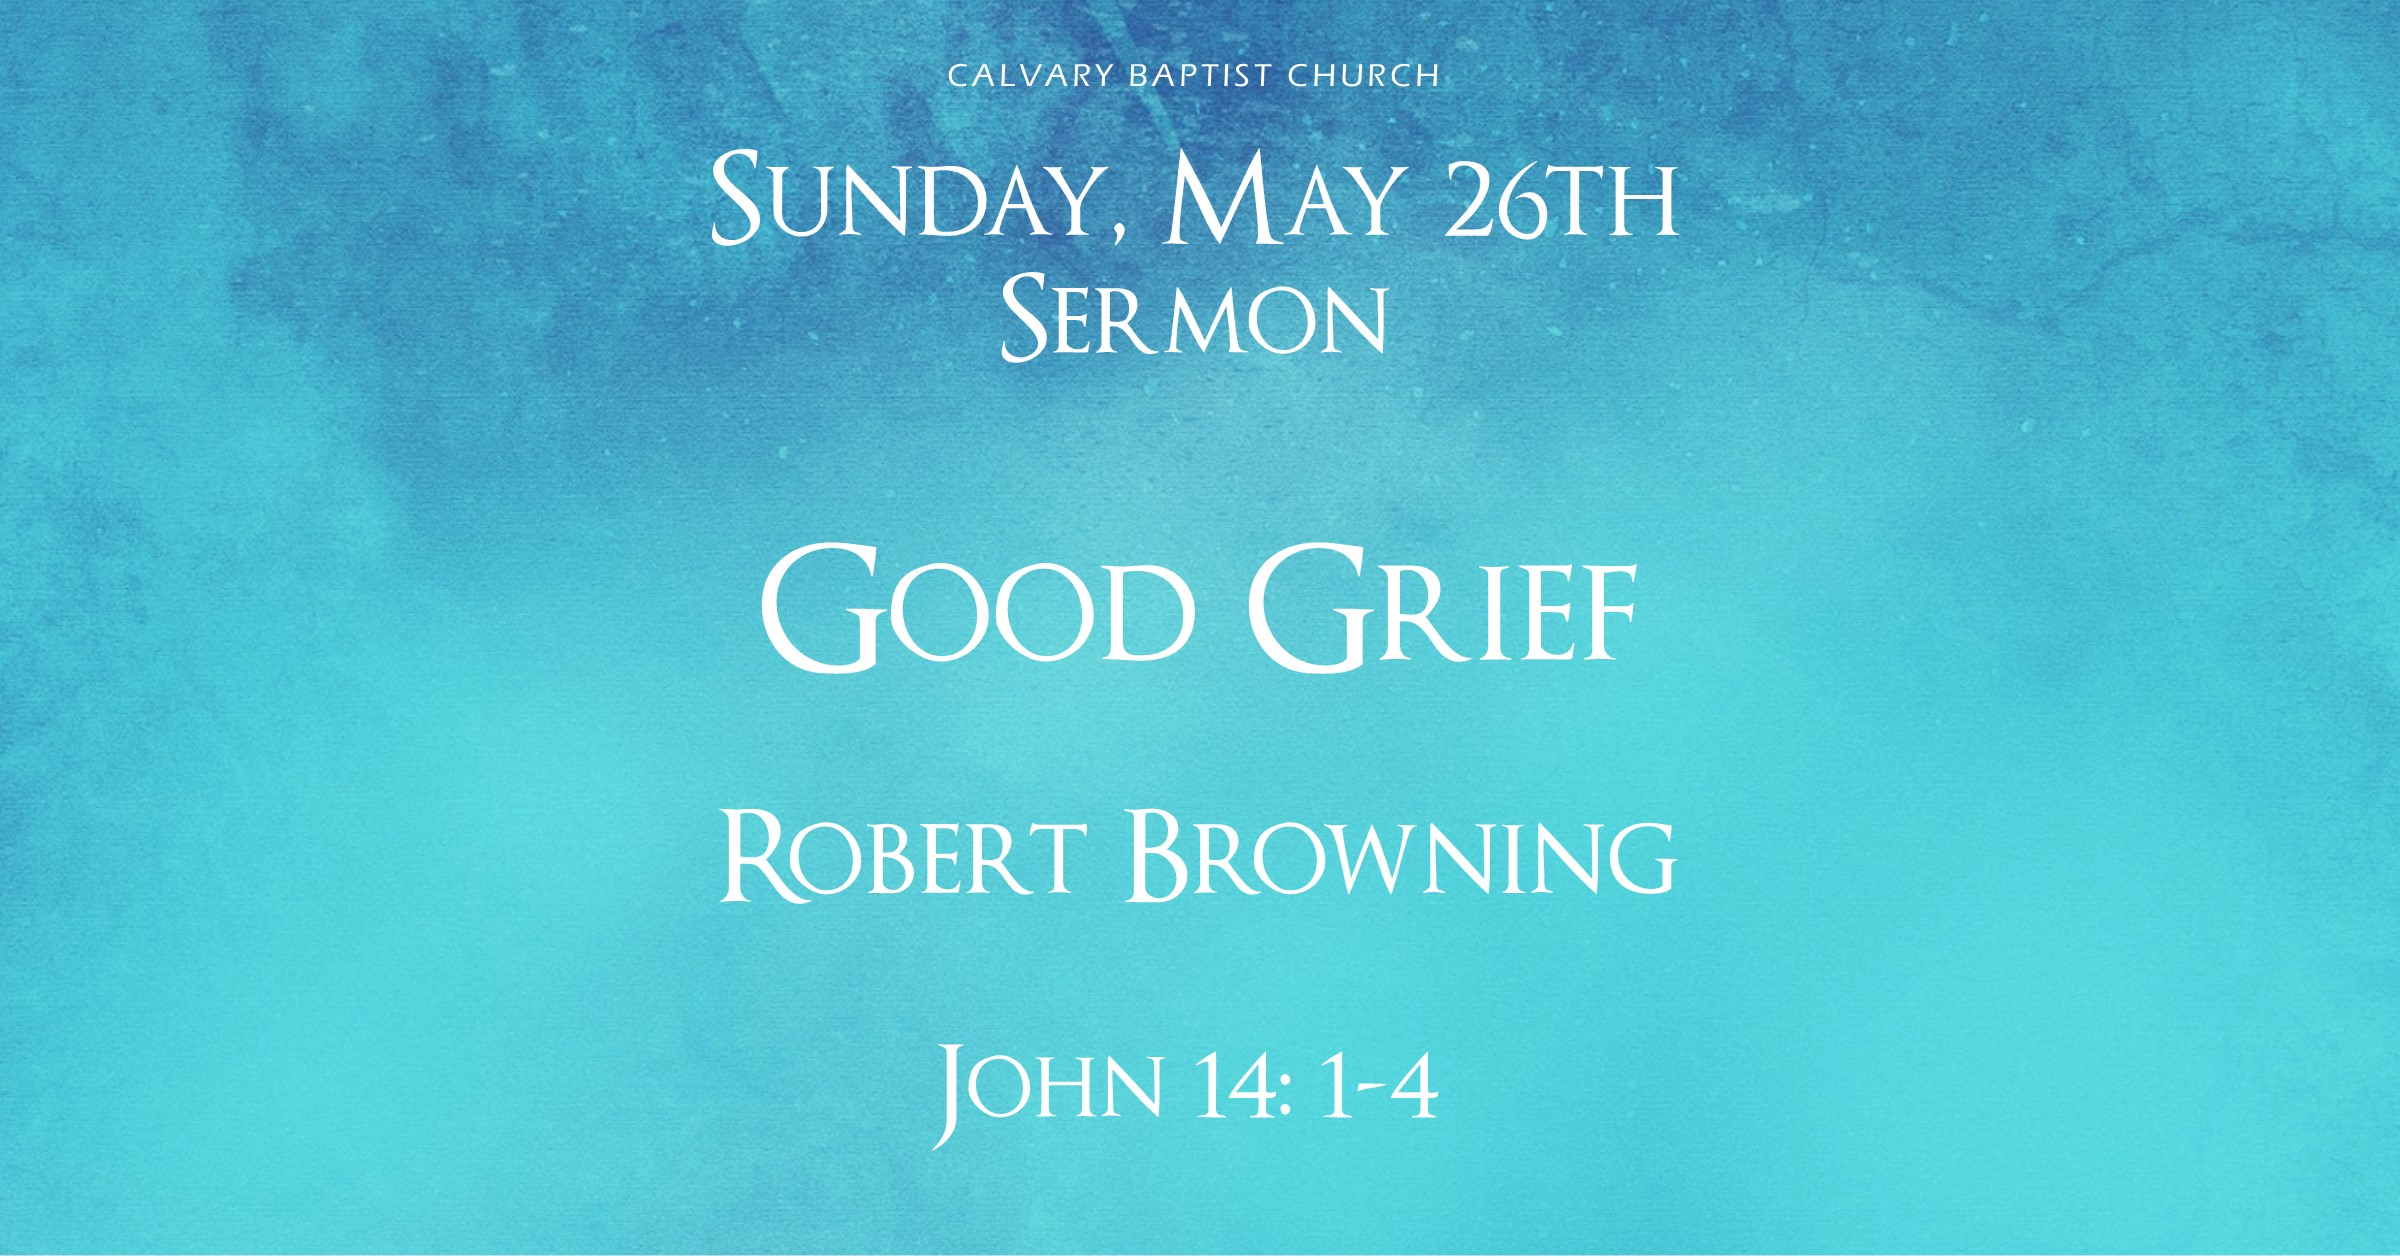 May 26 sermon fb image.jpg